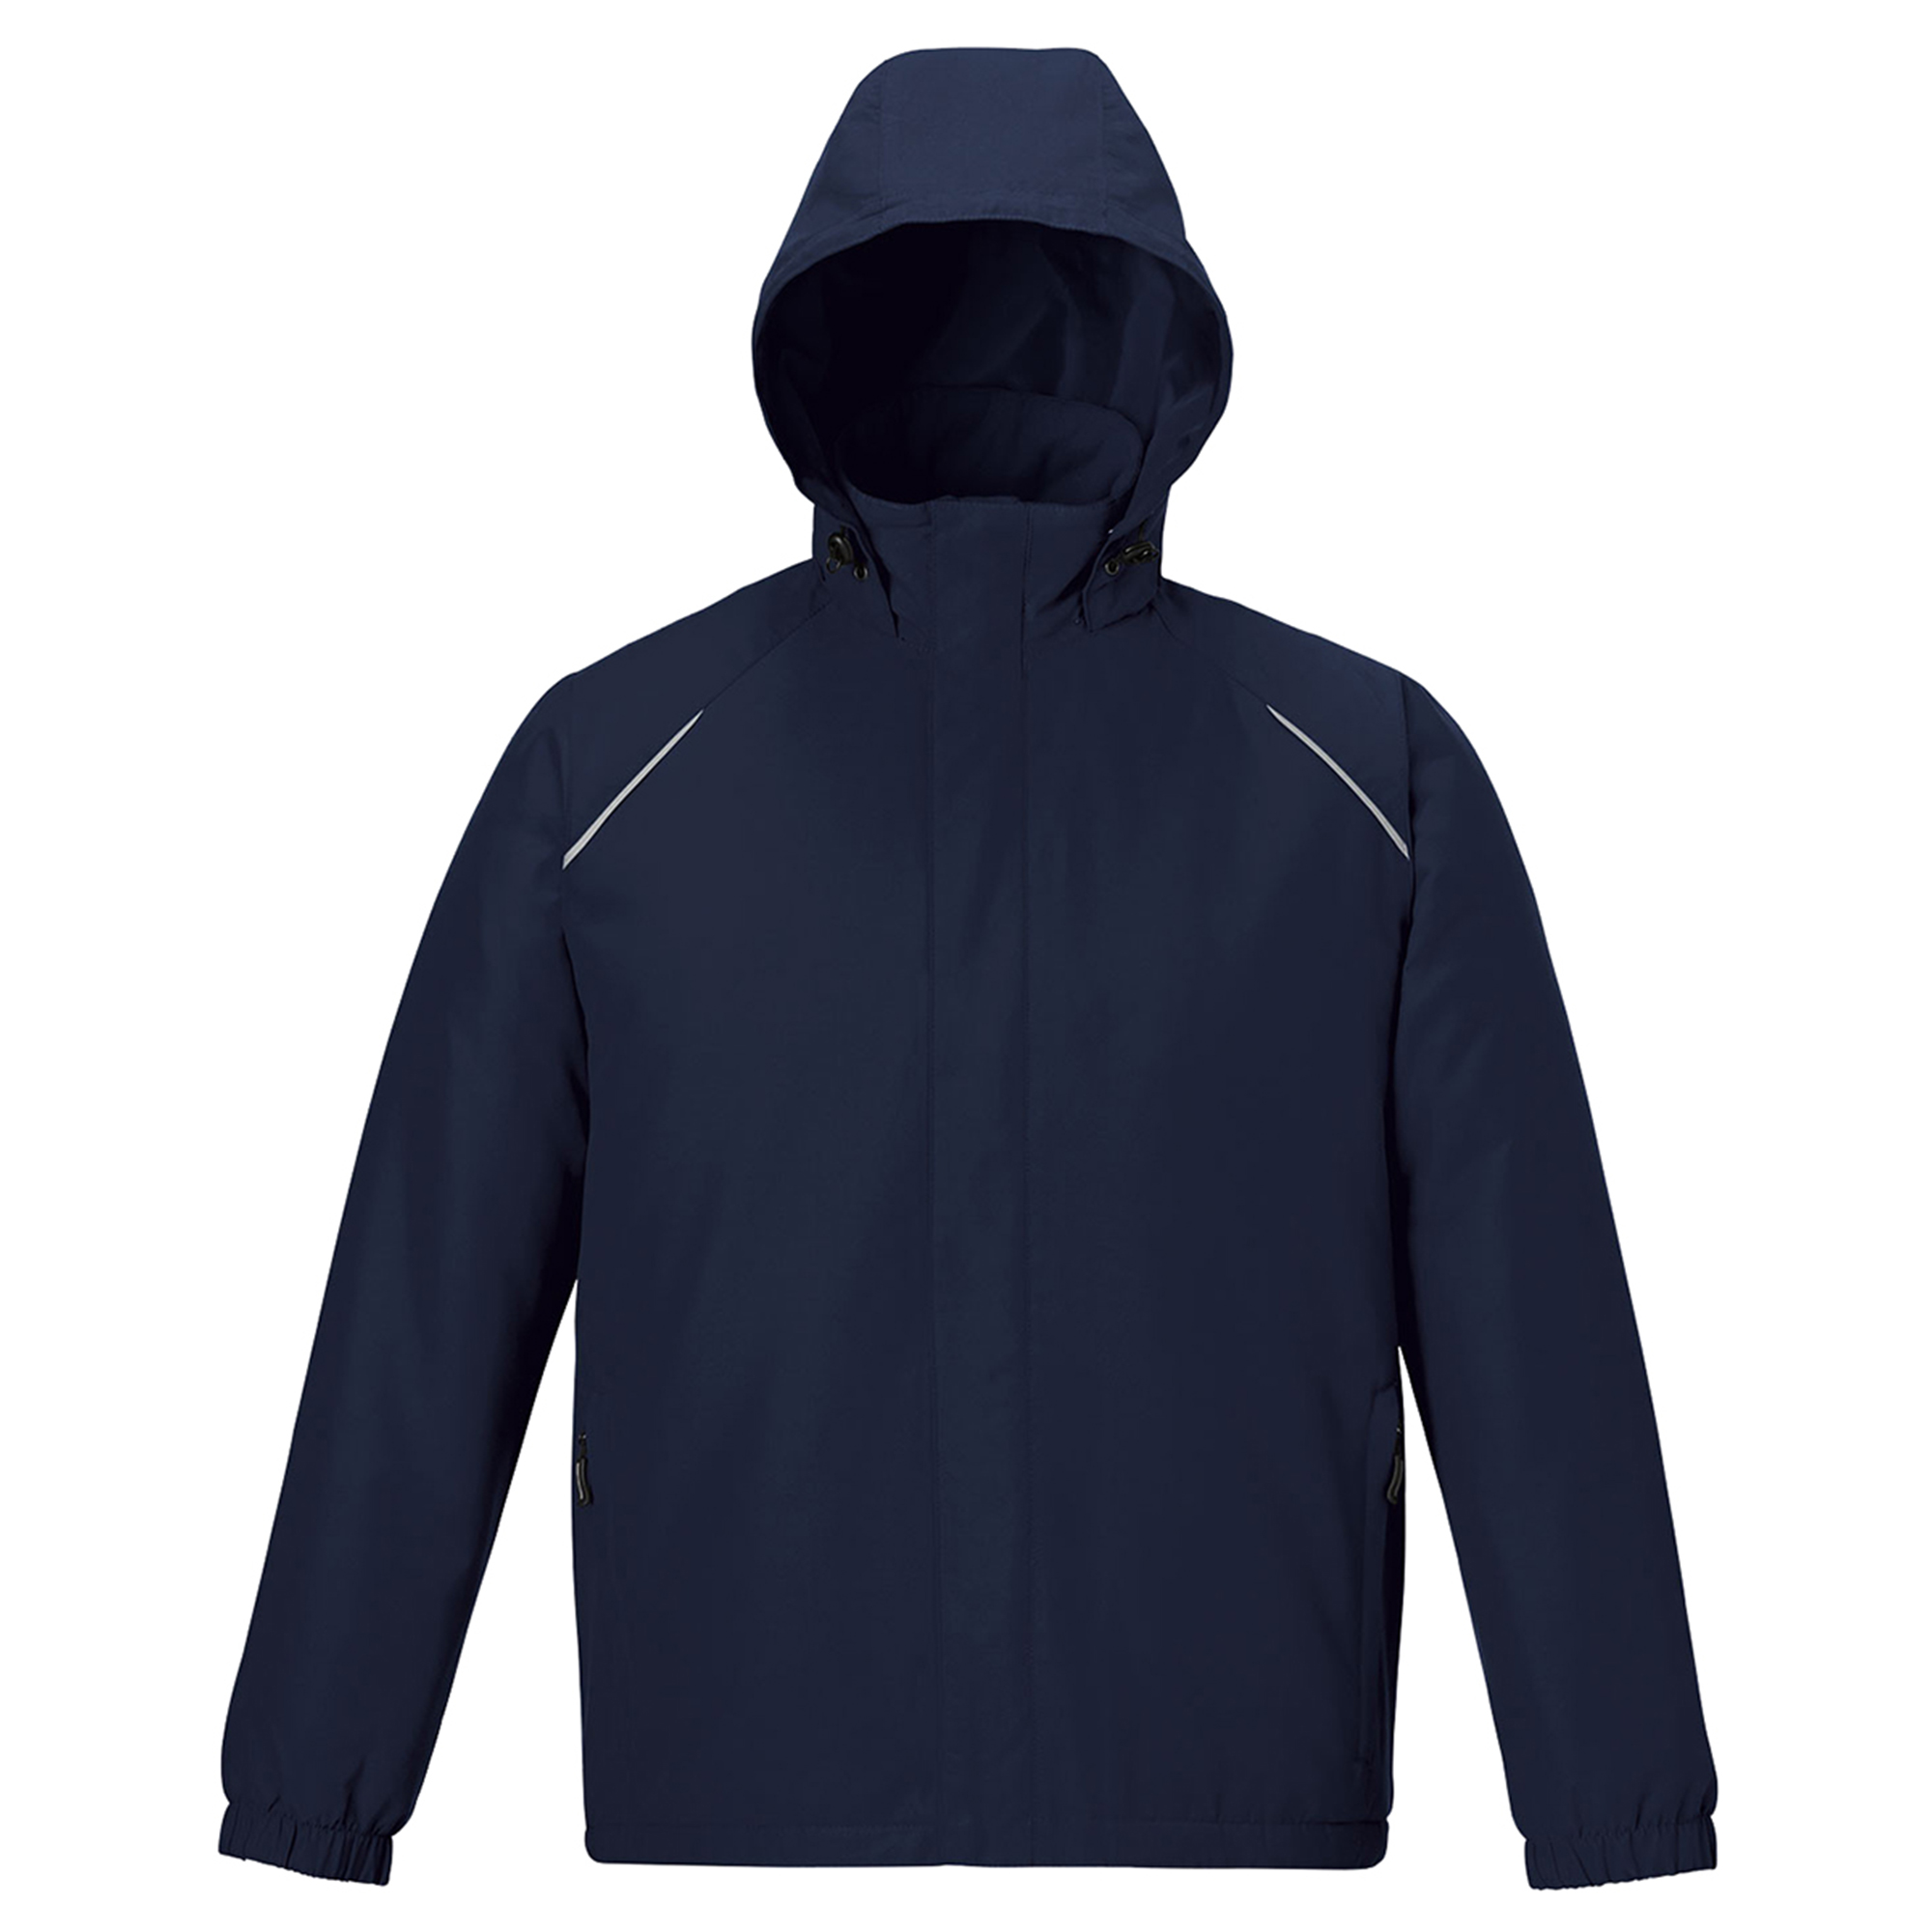 North End 88189T Men's Insulated Comfort Jacket at Sears.com